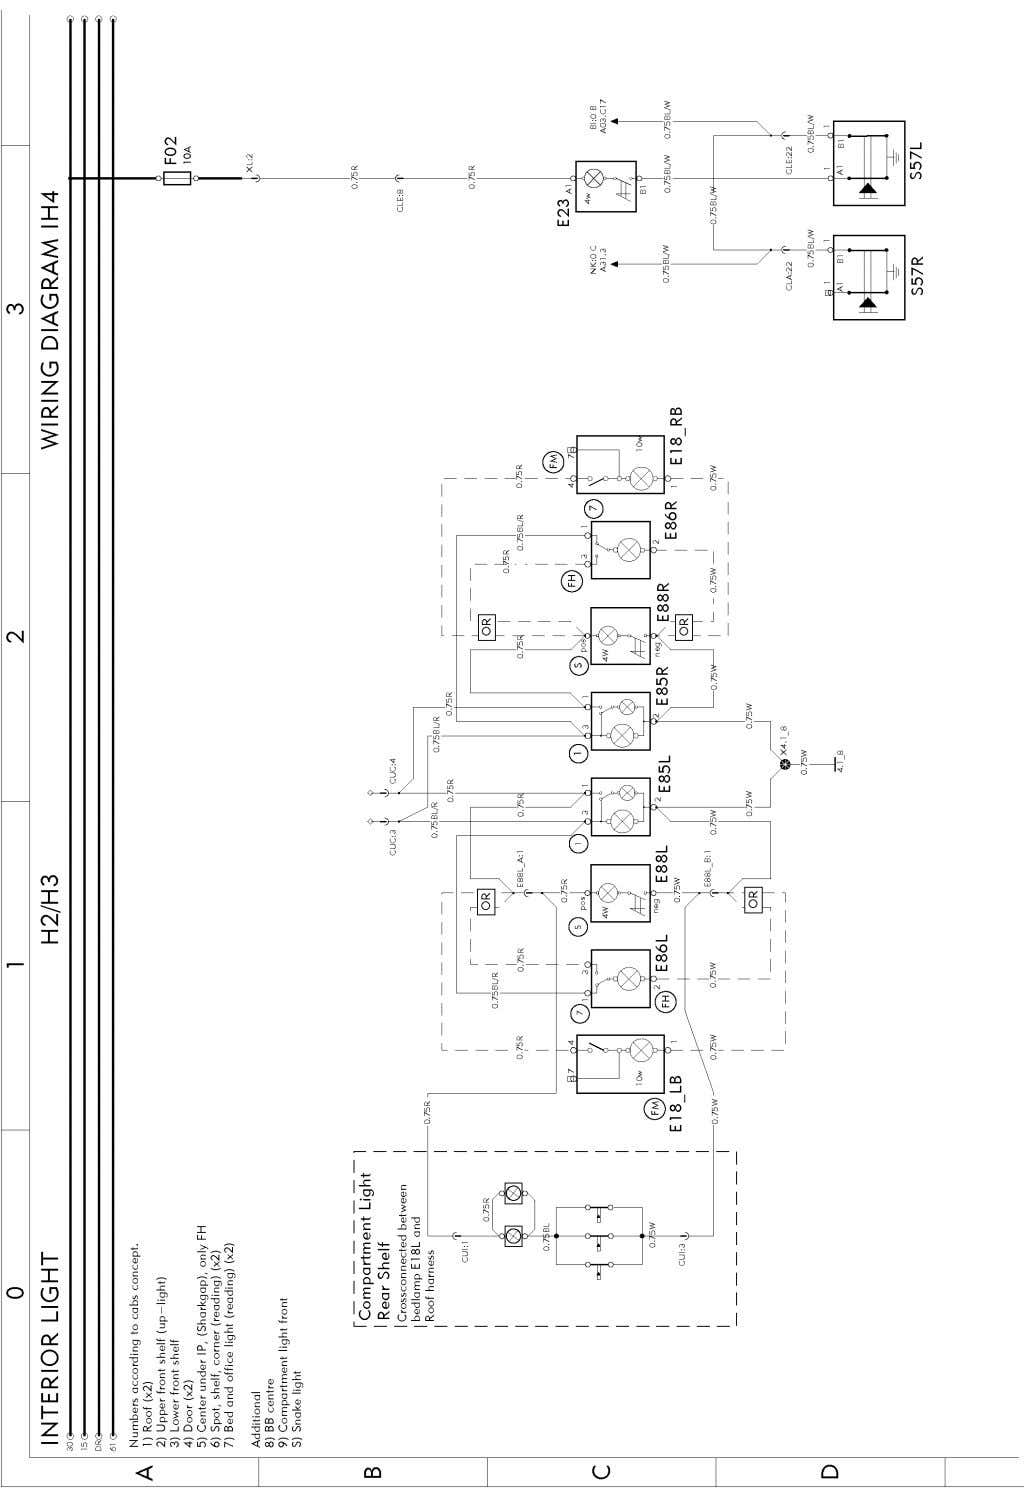 T3021476 Wiring diagram Page 91 (298)